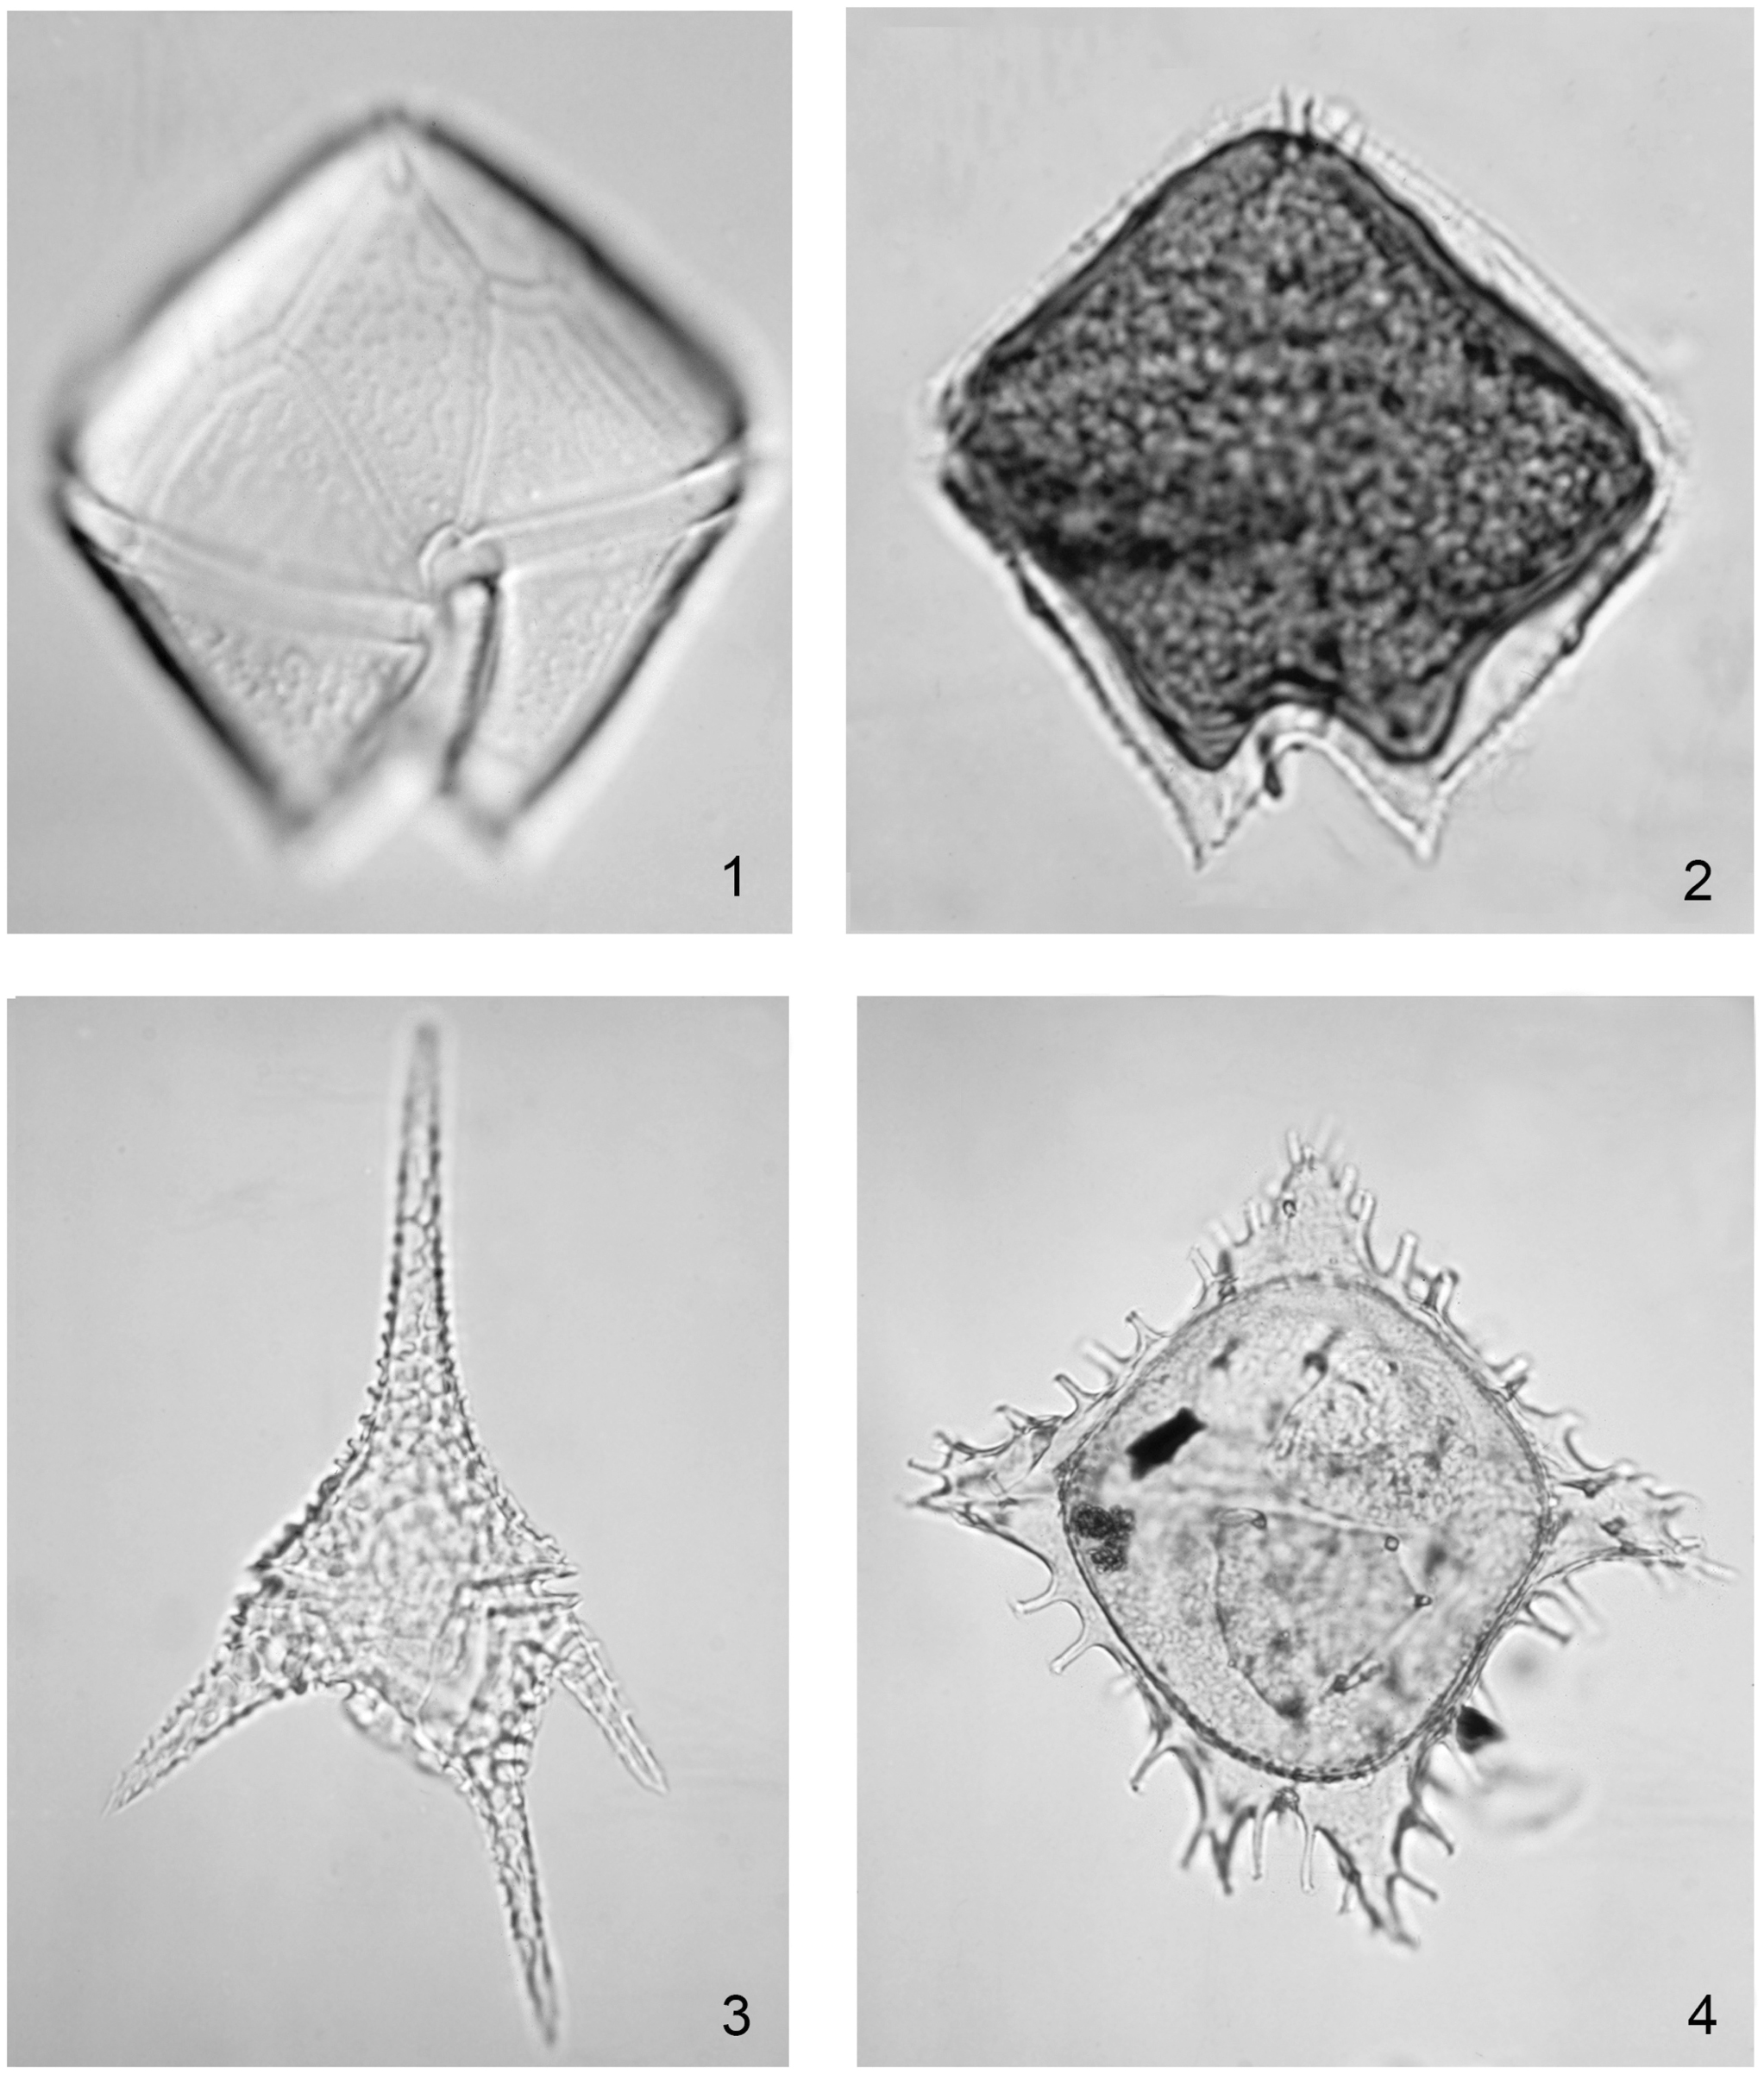 fe2f6c183d4 This species is typical of the Palaeogene peridiniacean subfamily  Wetzelielloideae